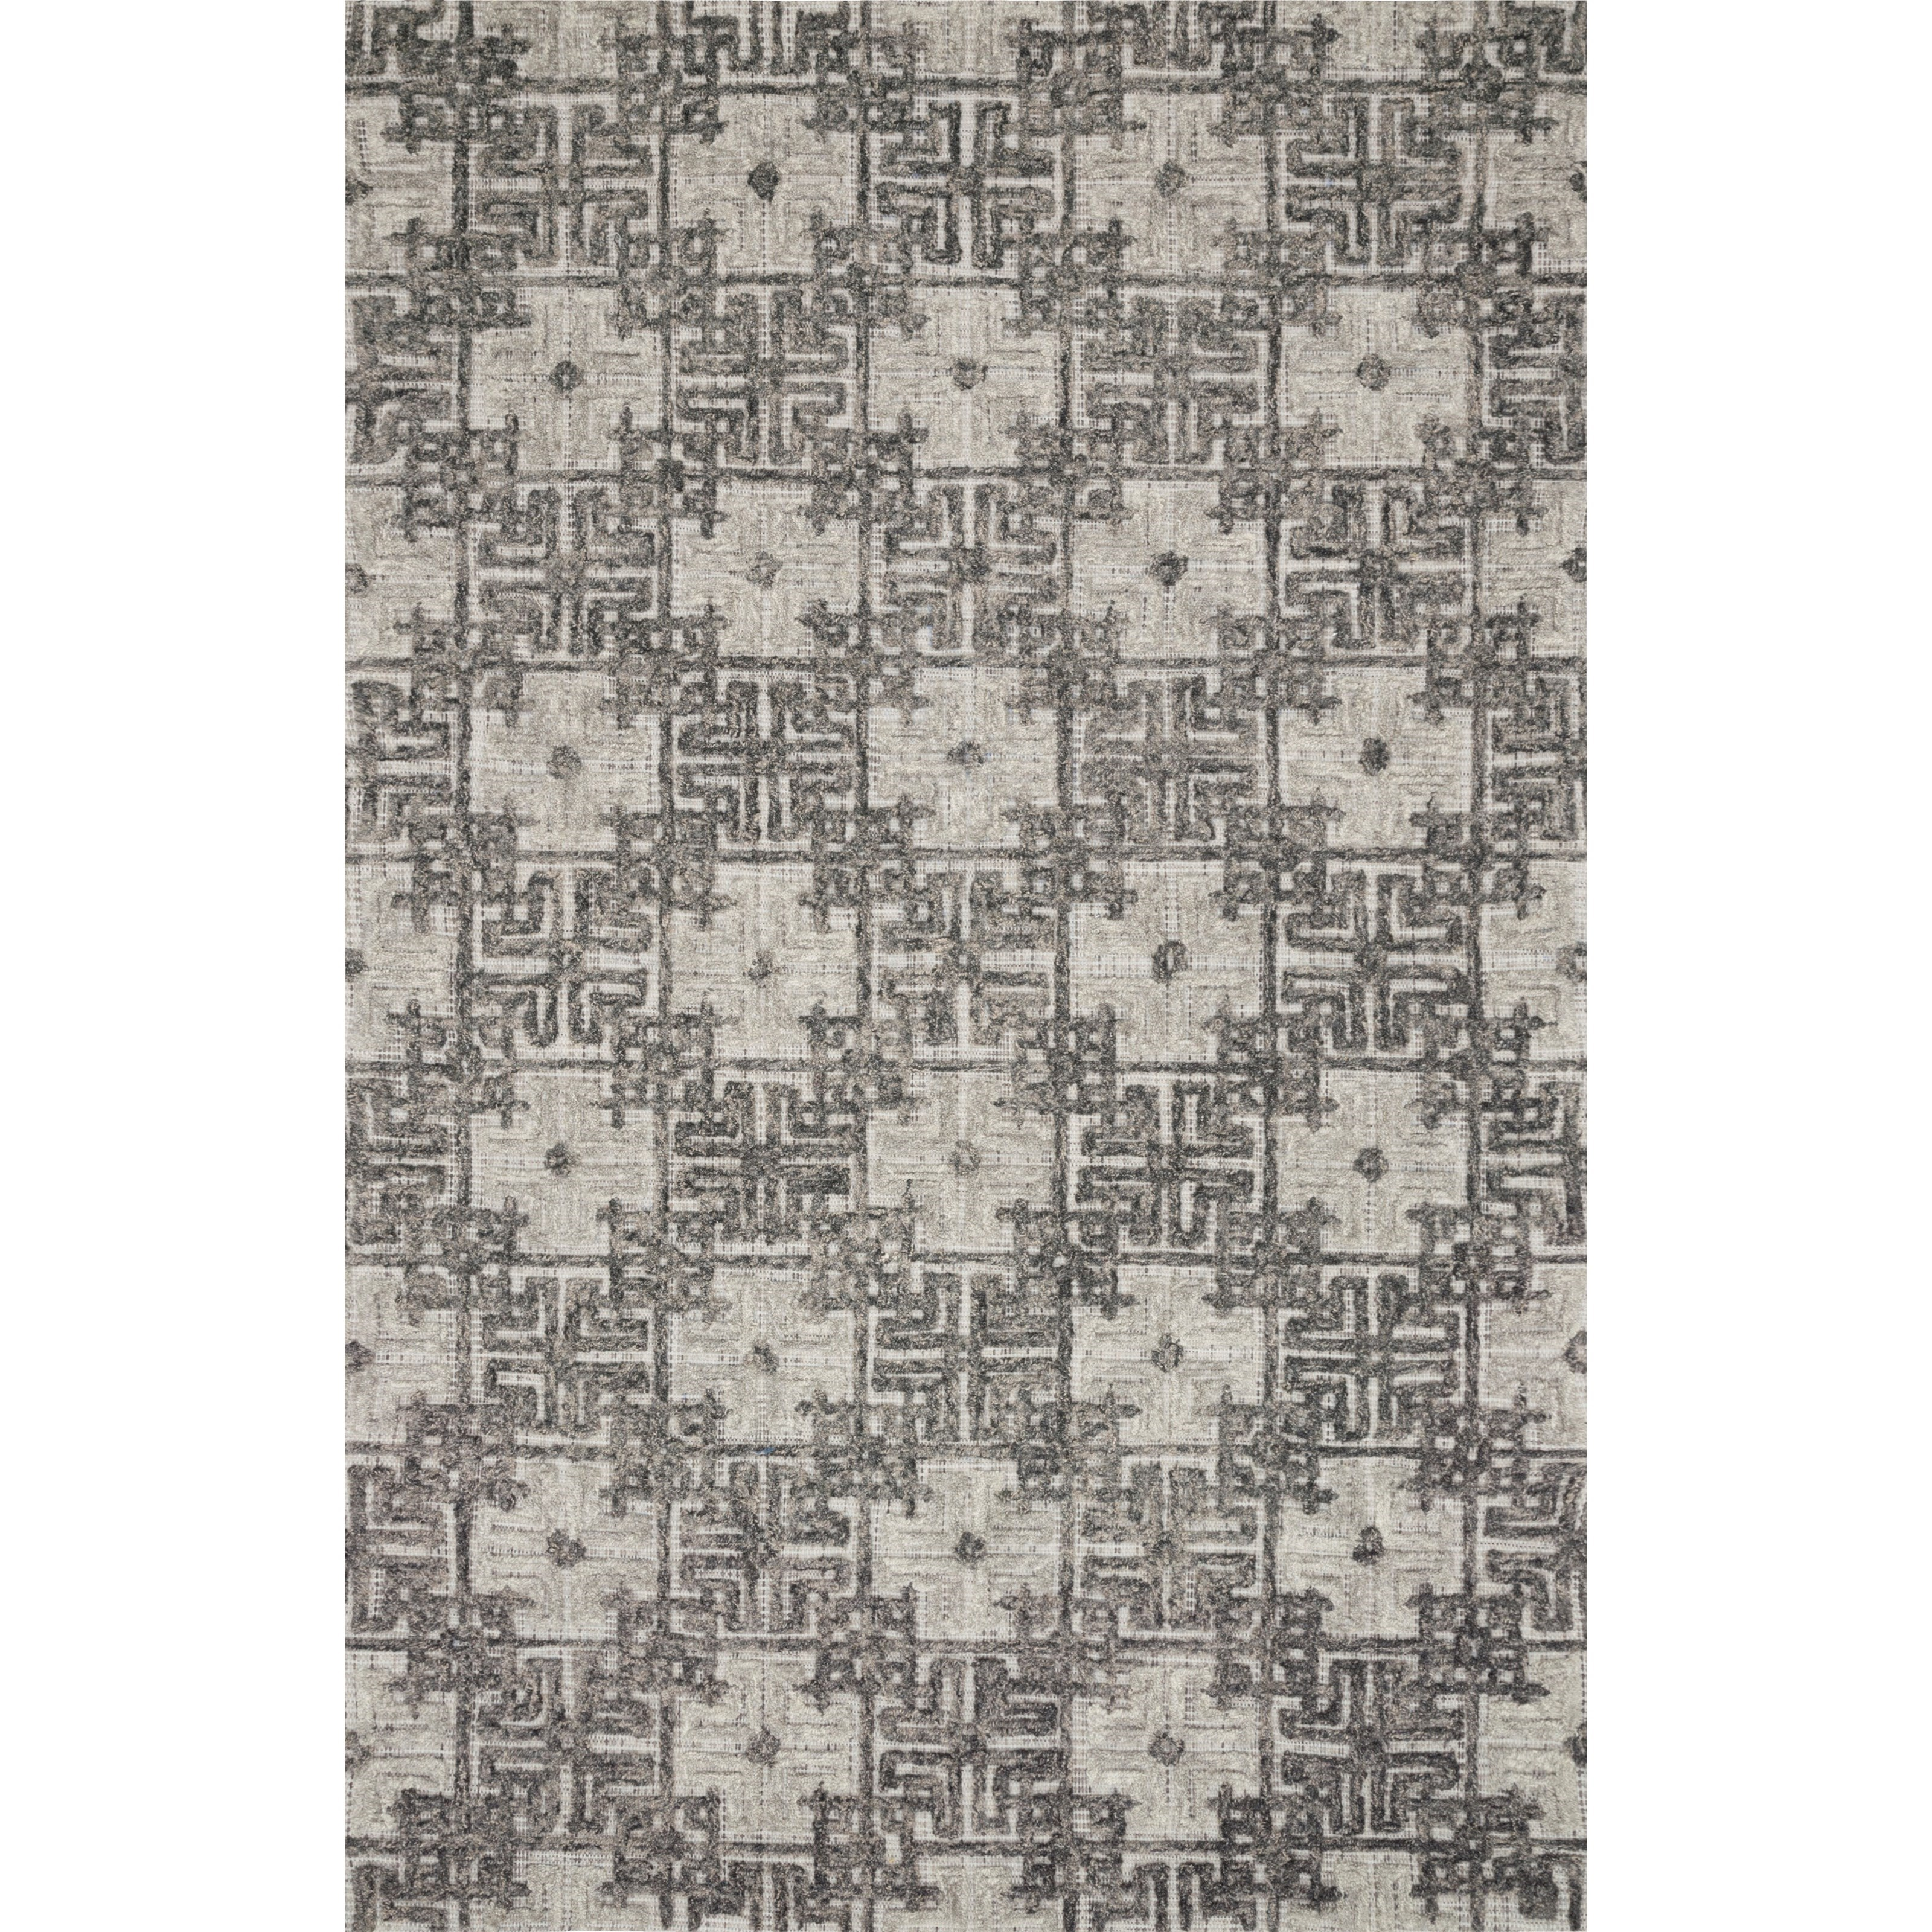 "Ehren 5'0"" x 7'6"" Charcoal / Fog Rug by Loloi Rugs at Pedigo Furniture"